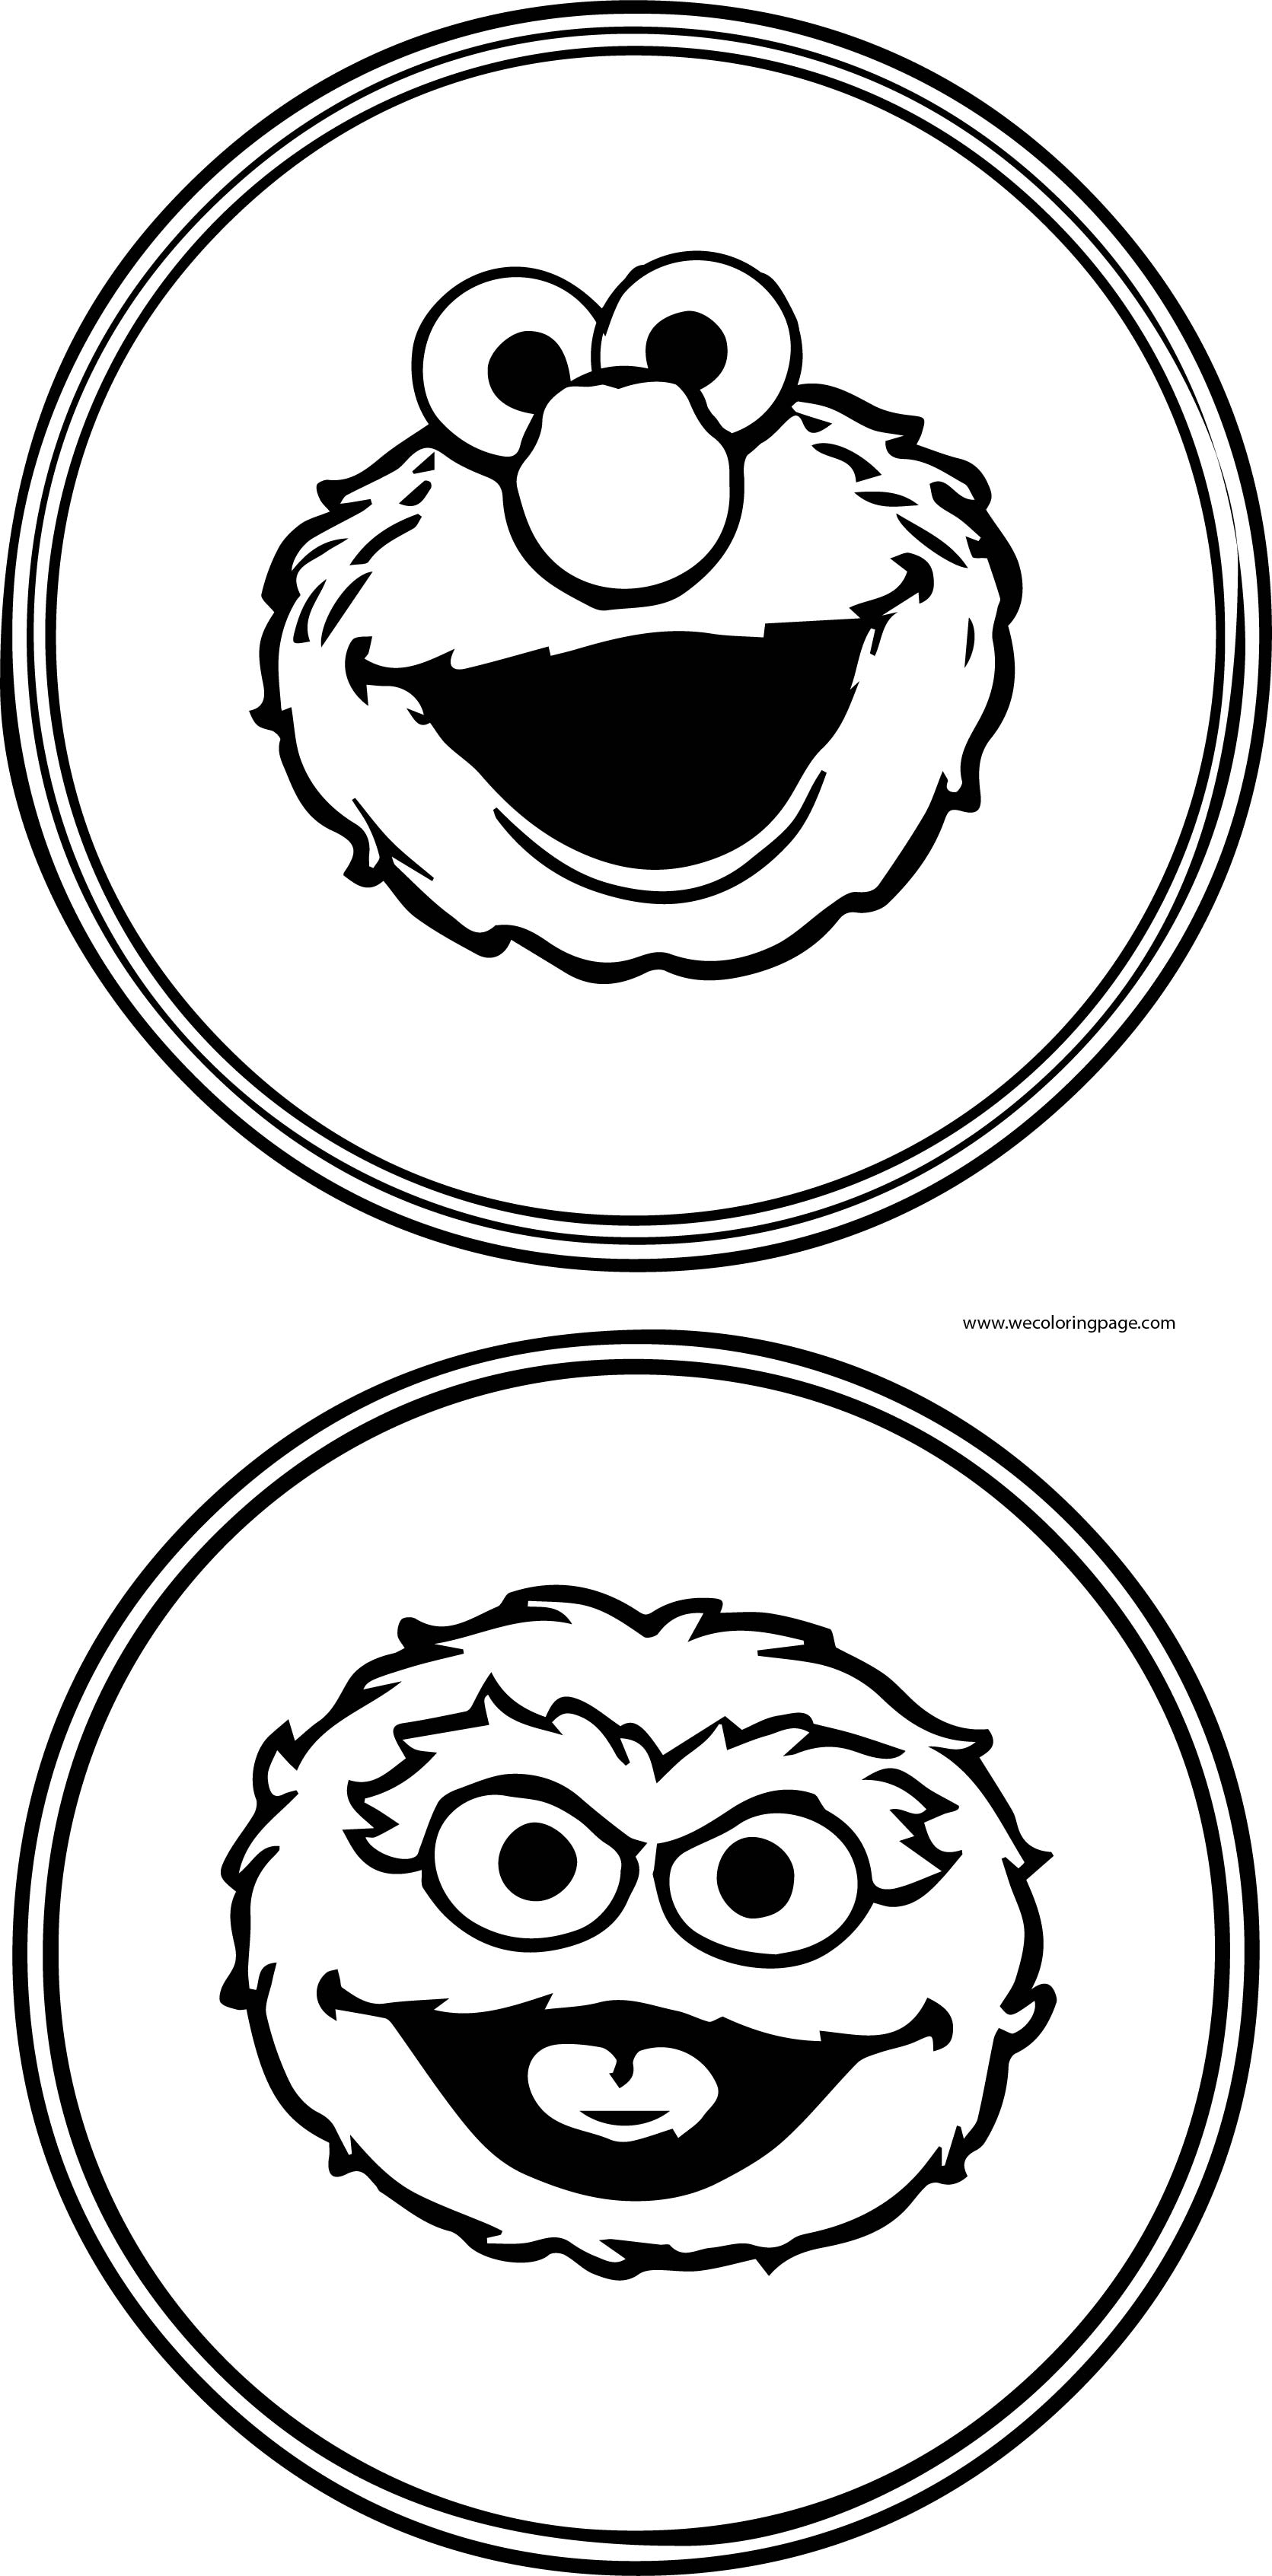 Cartoon Characters Pictures For Coloring Sesame Street Coloring Page